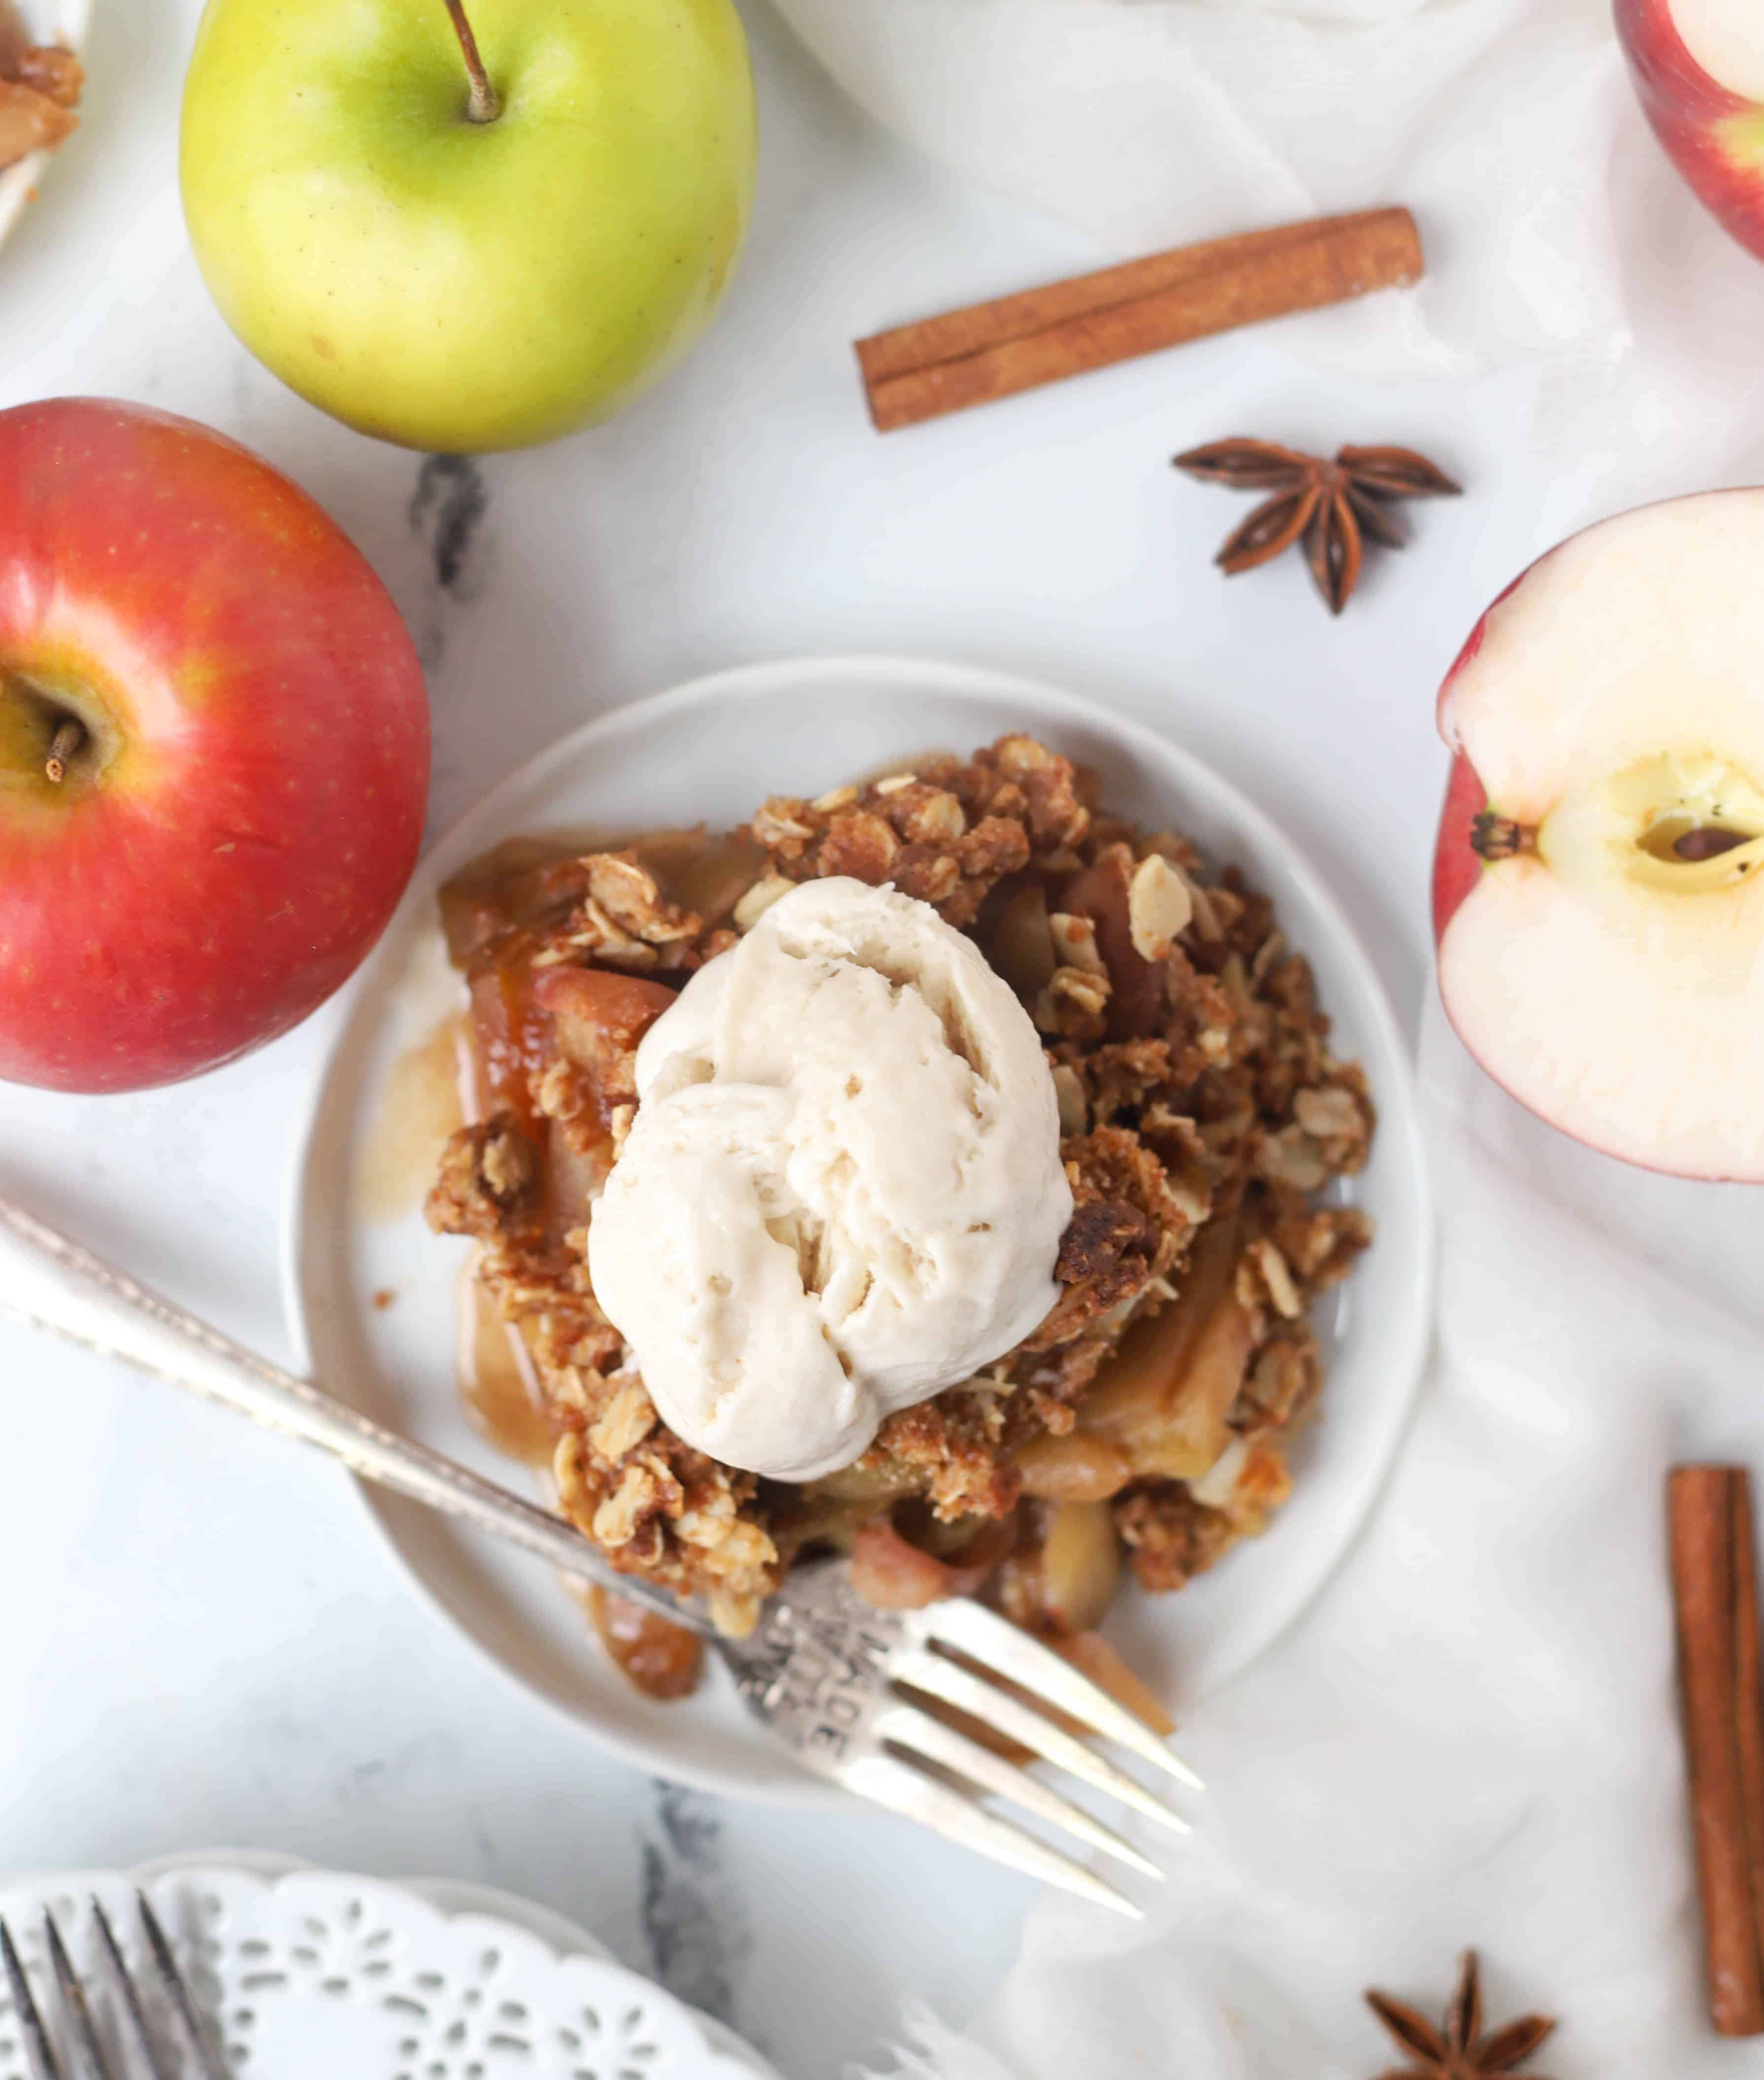 serving of apple crisp on a plate topped with ice-cream